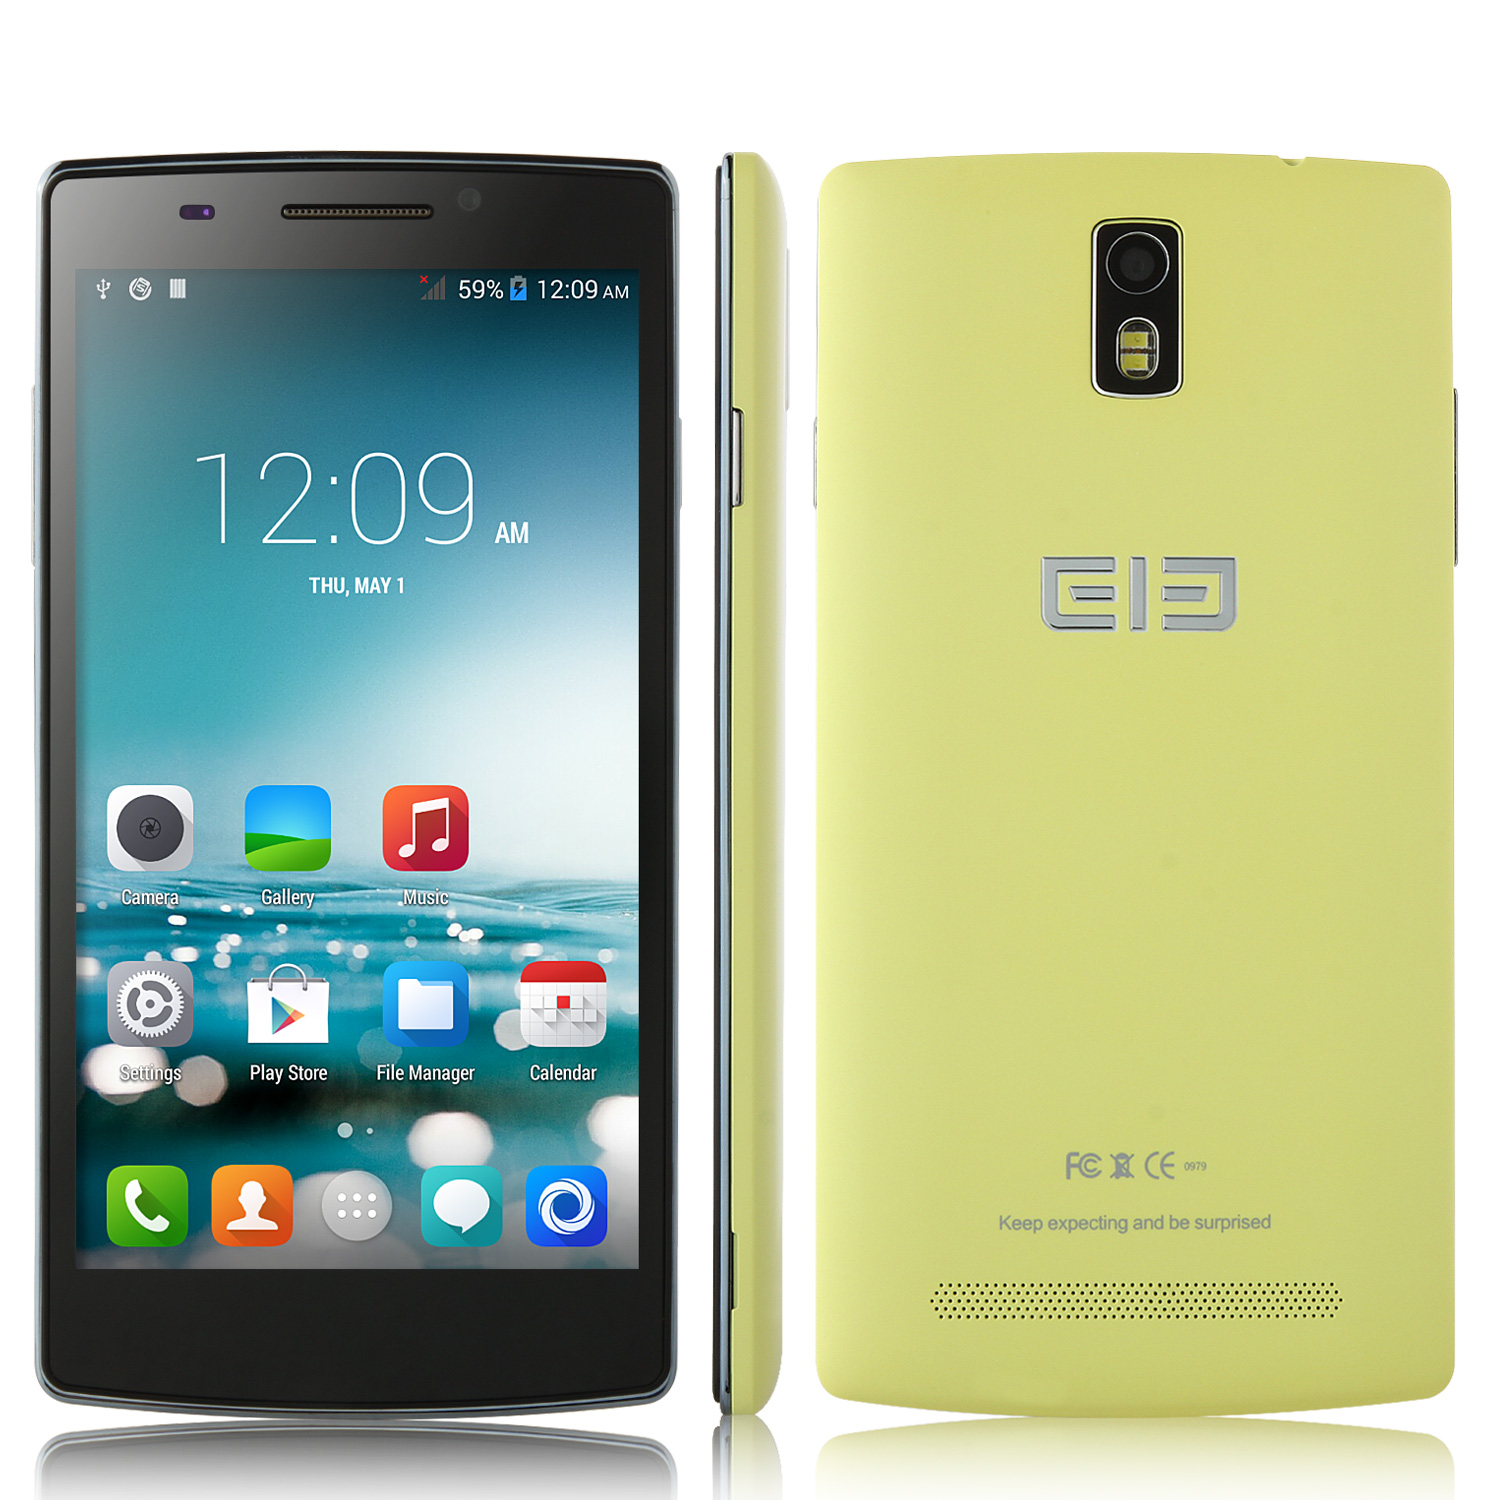 Elephone G5 Smartphone Smart Wake Android 4.4 MTK6582 5.5 Inch HD IPS Screen- Yellow